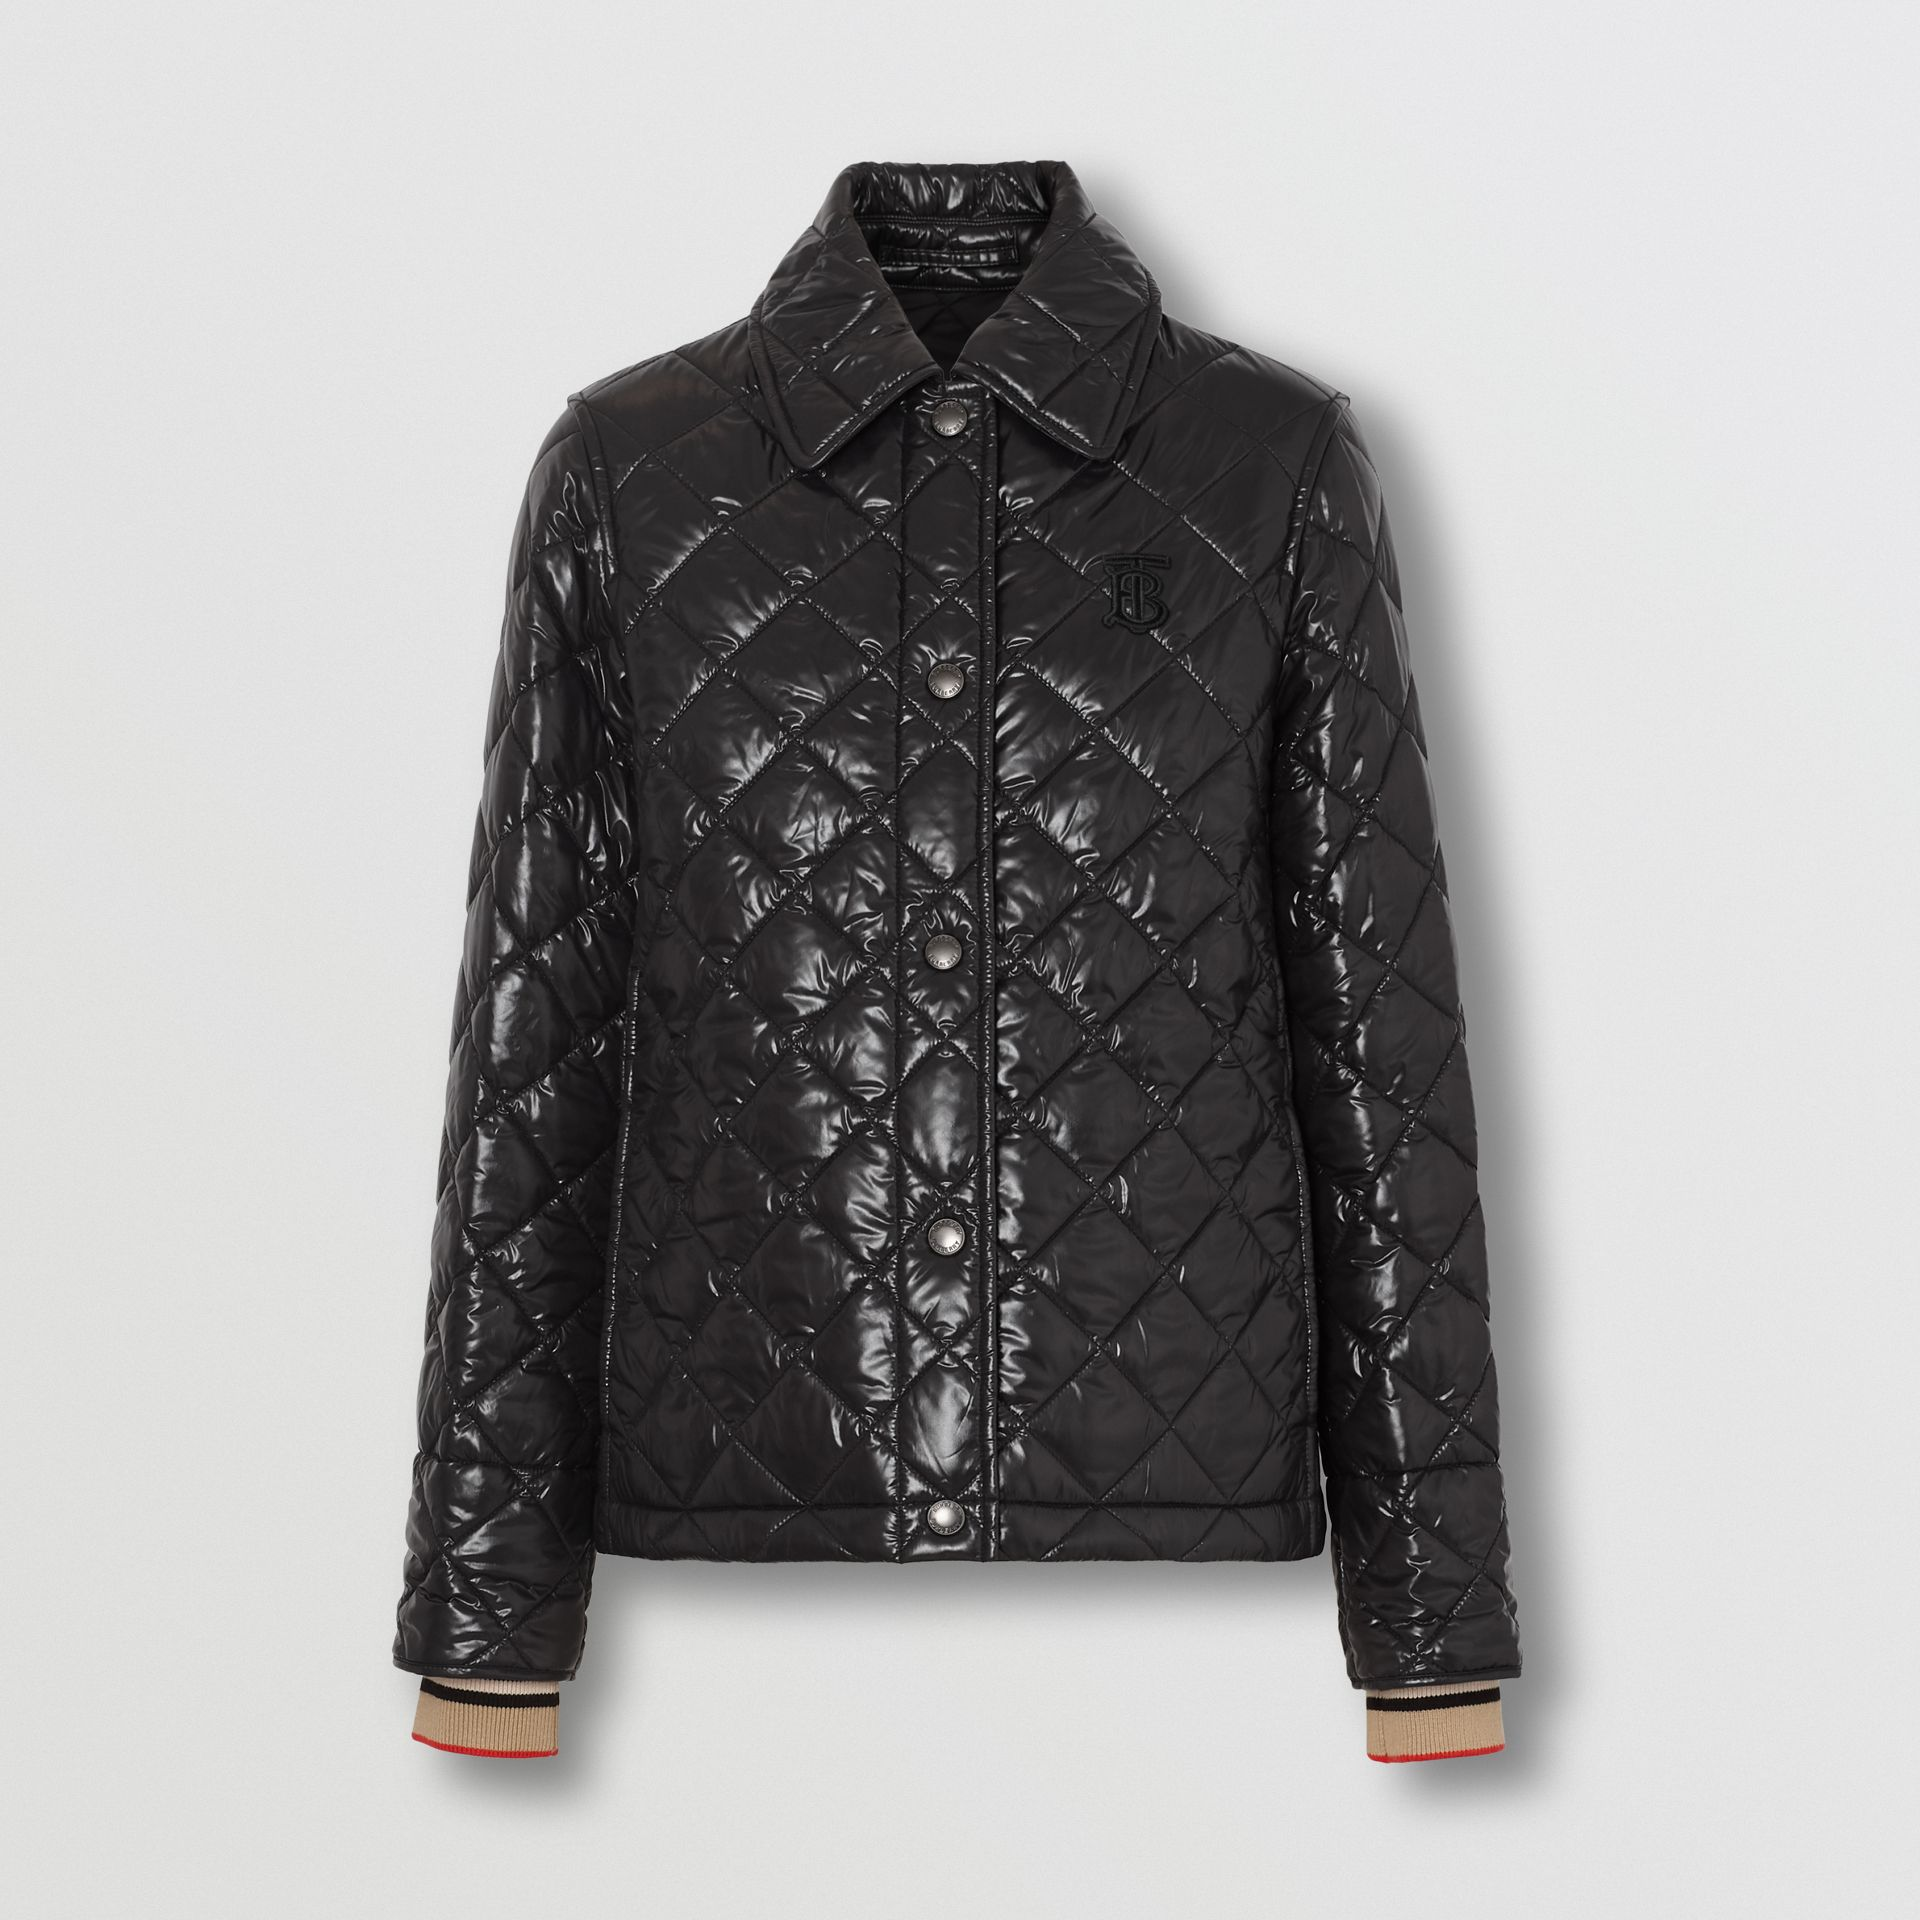 Monogram Motif Diamond Quilted Jacket in Black - Women | Burberry United Kingdom - gallery image 3